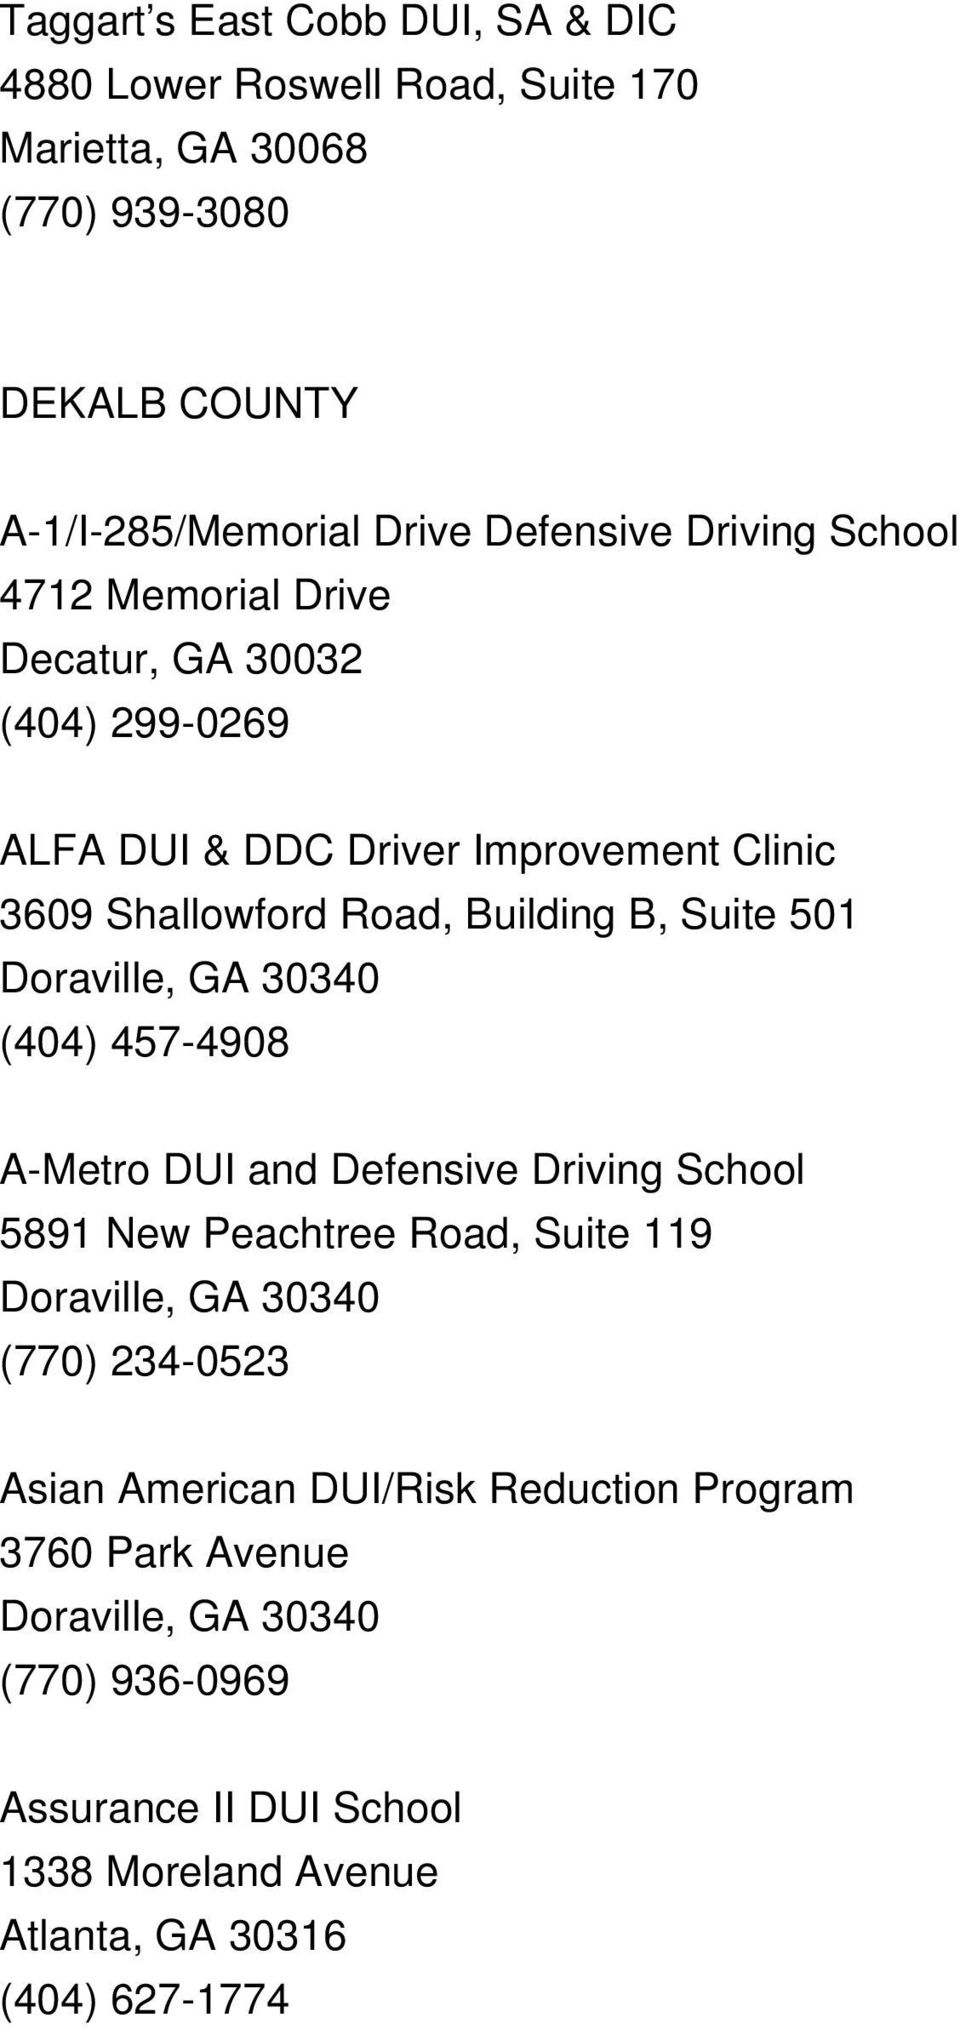 Doraville, GA 30340 (404) 457-4908 A-Metro DUI and Defensive Driving School 5891 New Peachtree Road, Suite 119 Doraville, GA 30340 (770) 234-0523 Asian